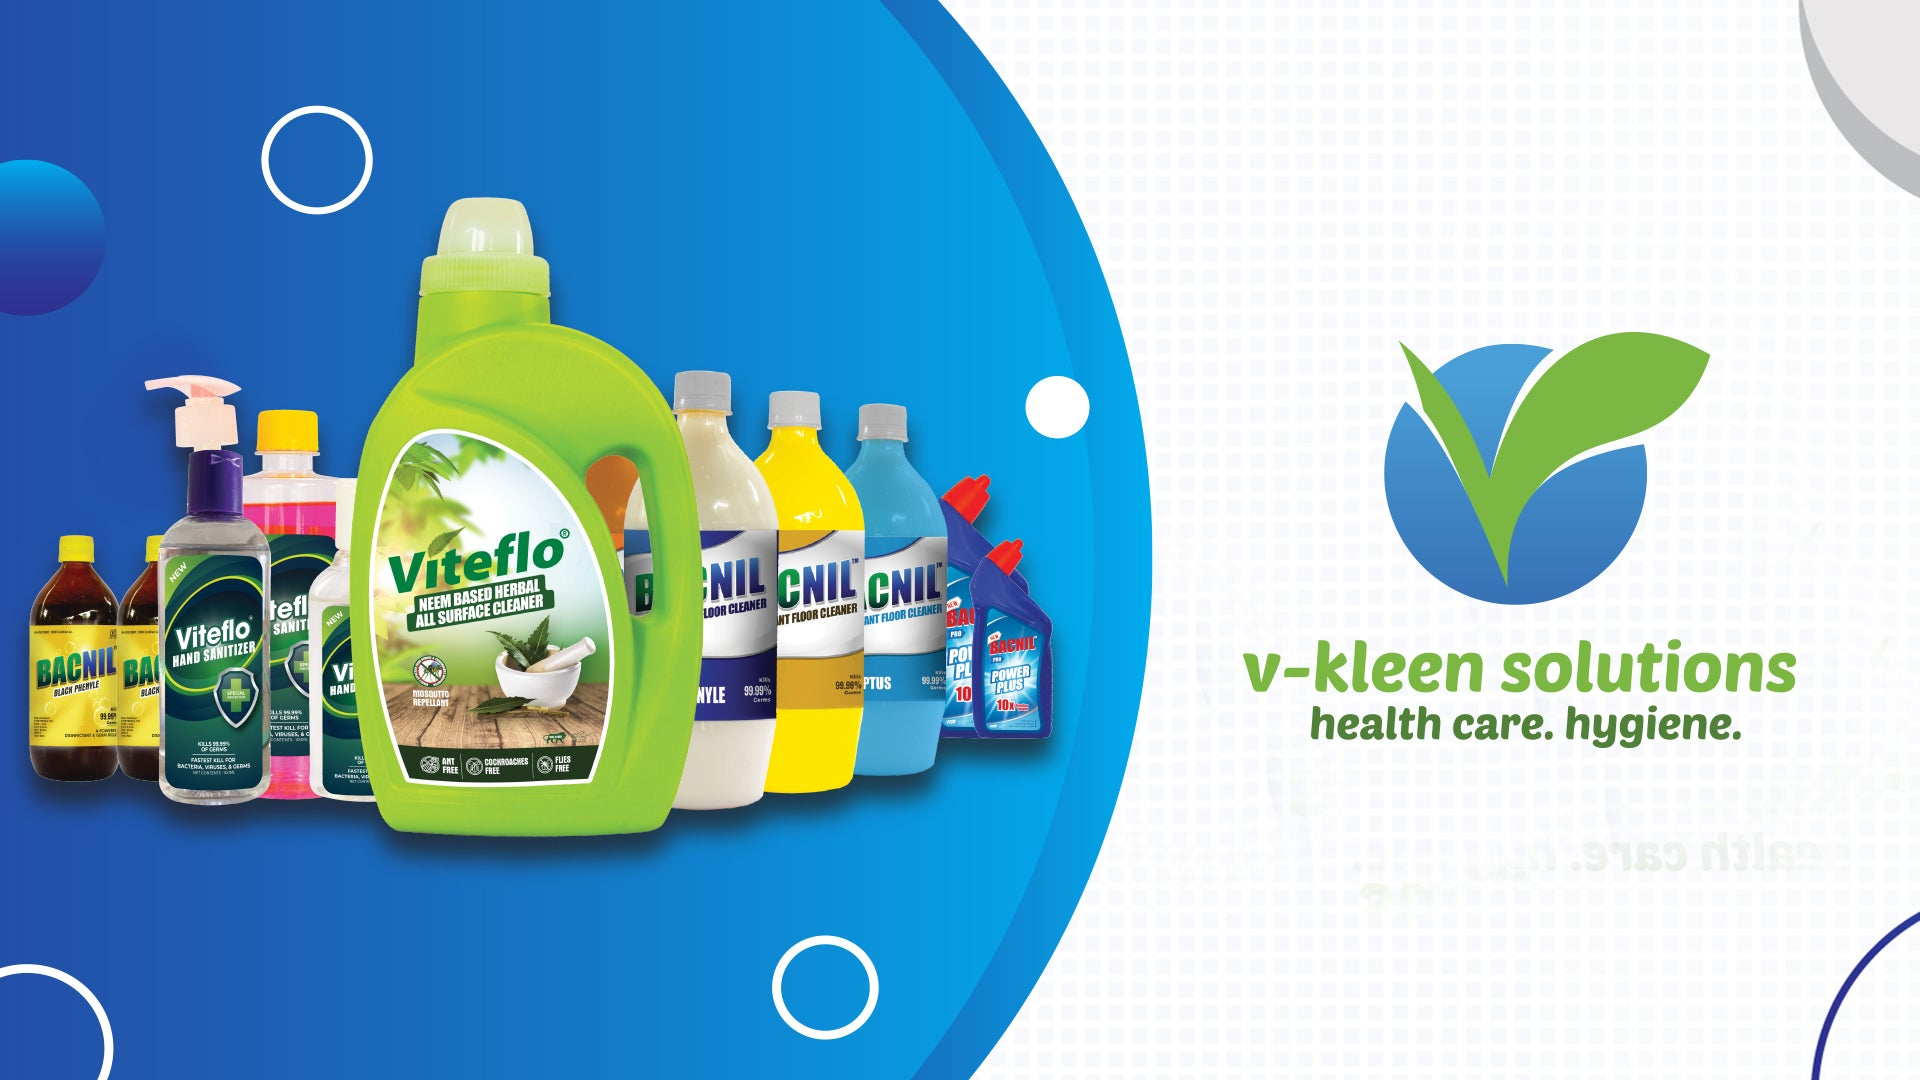 Vkleen products - Floor cleaners , Glass cleaners , All surface cleaners and Sanitizers